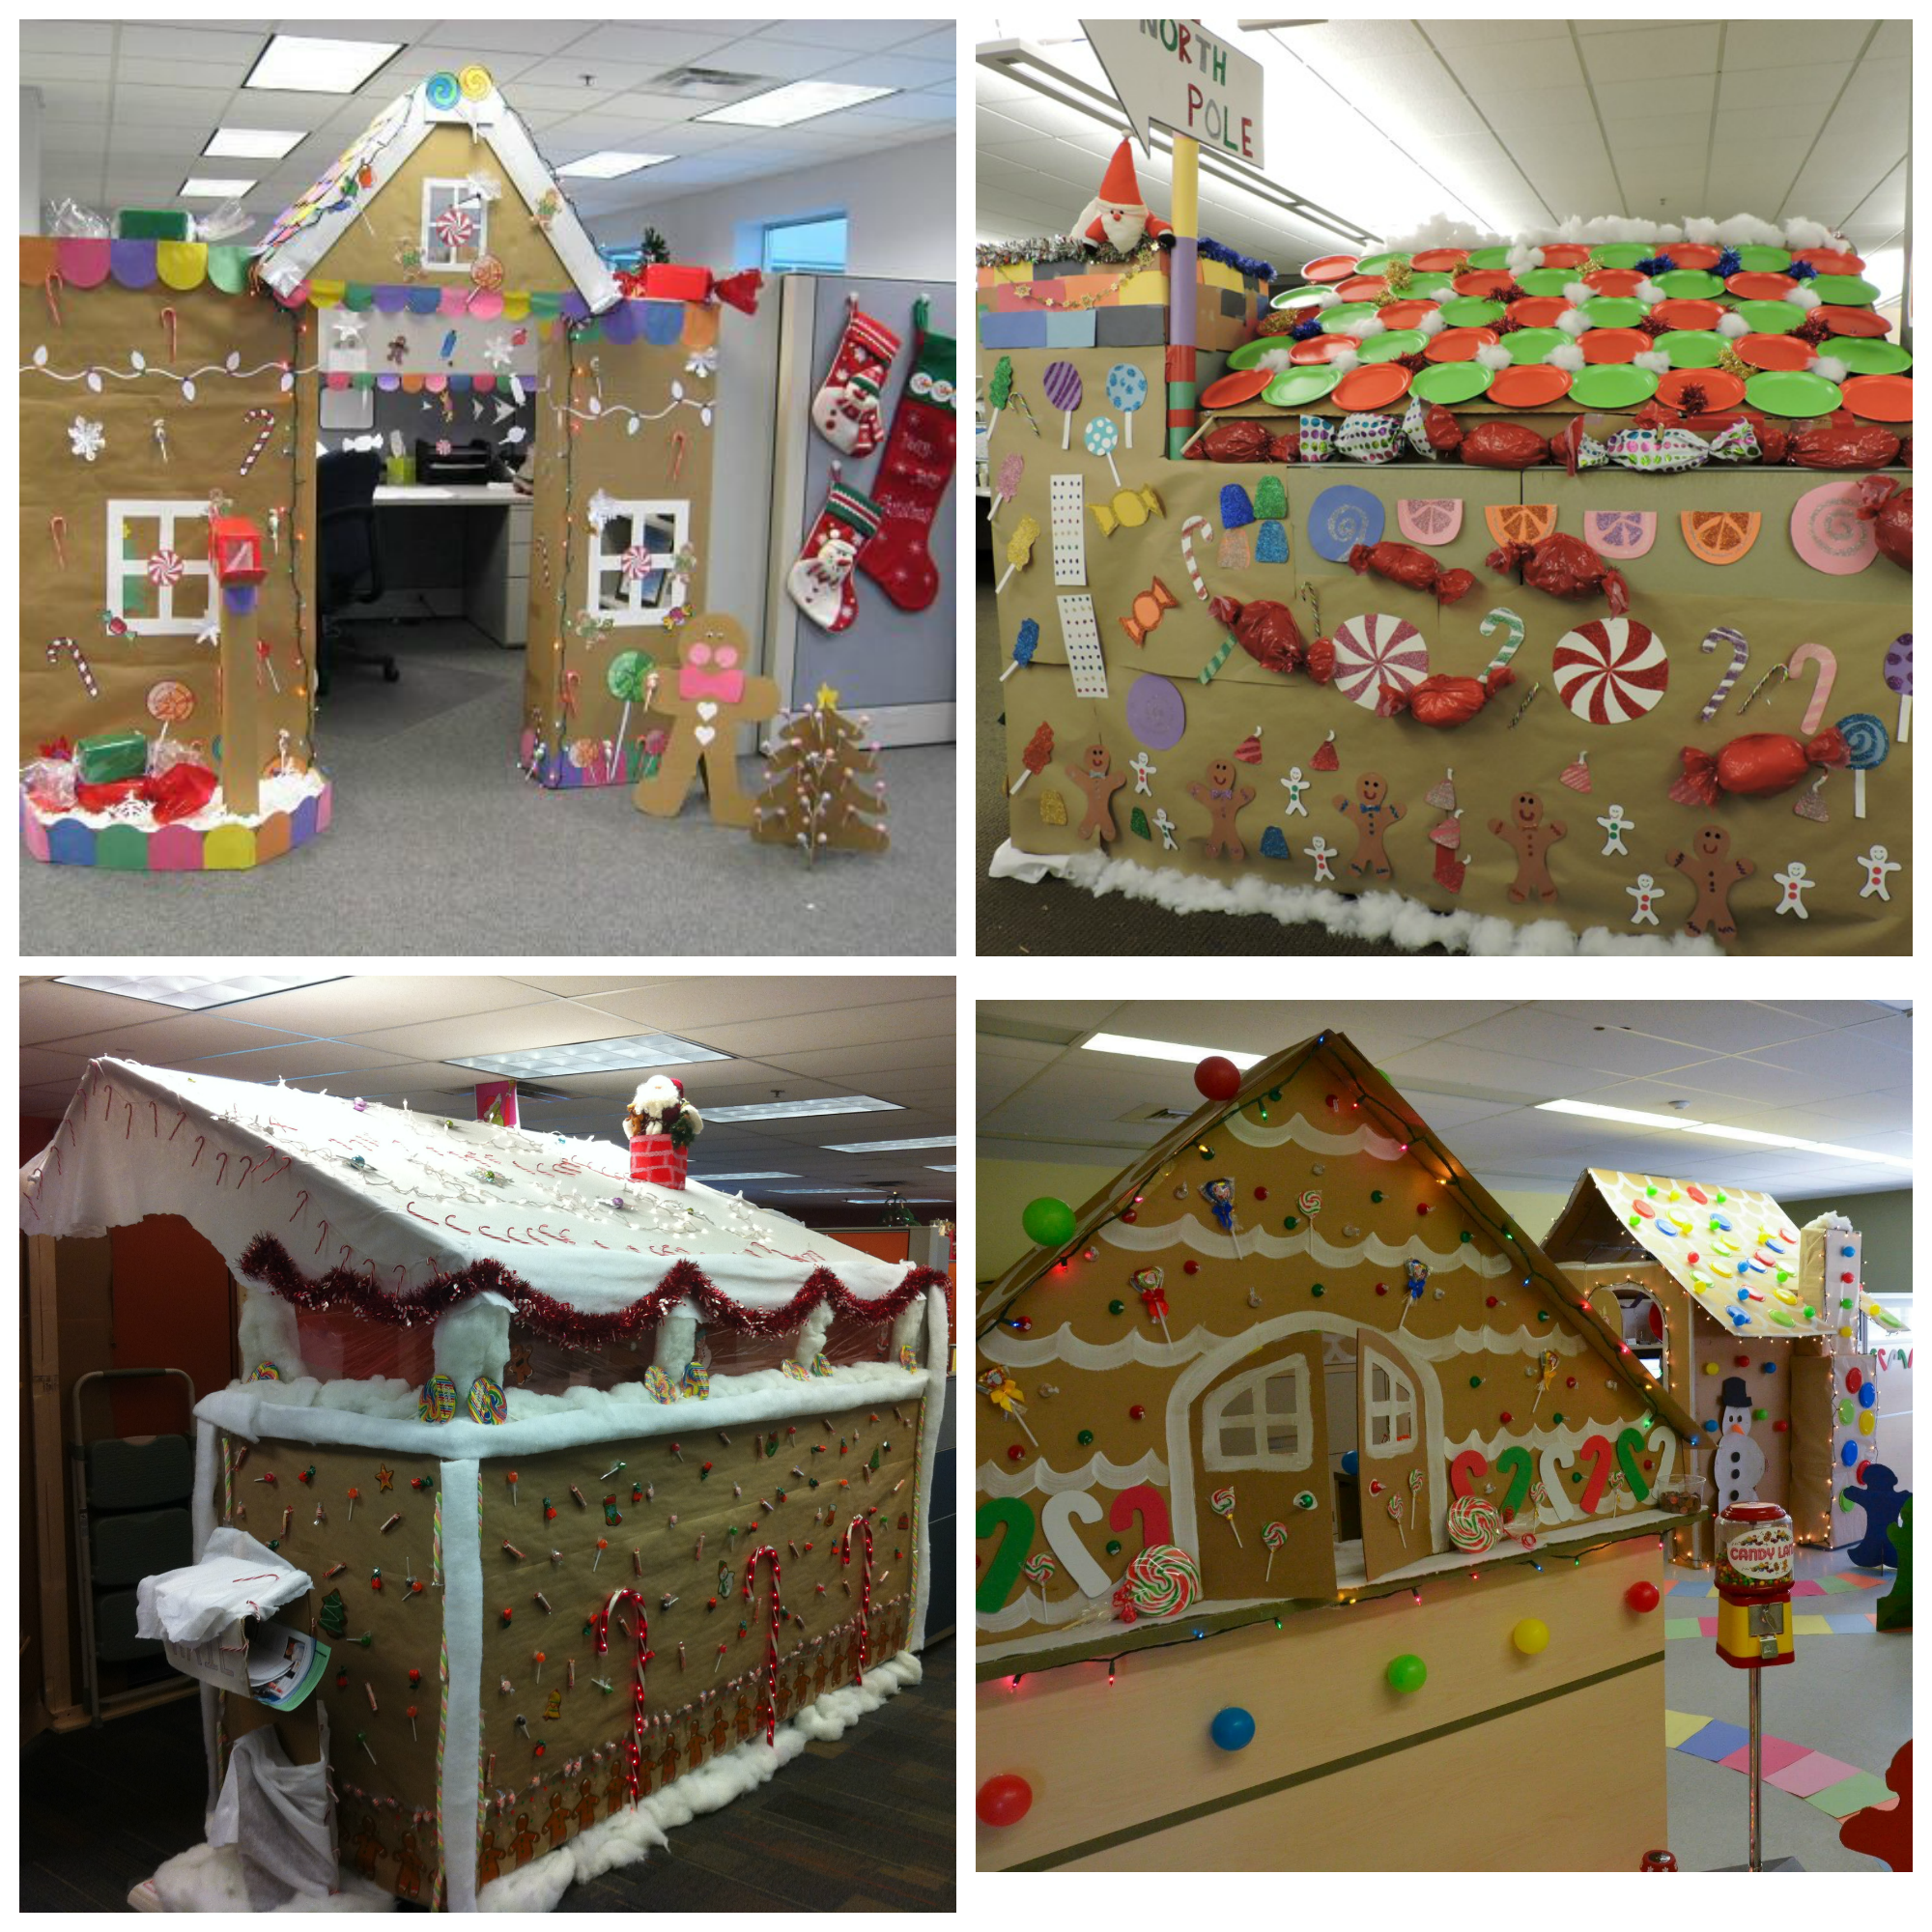 Creative Ways To Turn Your Cubicle Into A Winter Wonderland